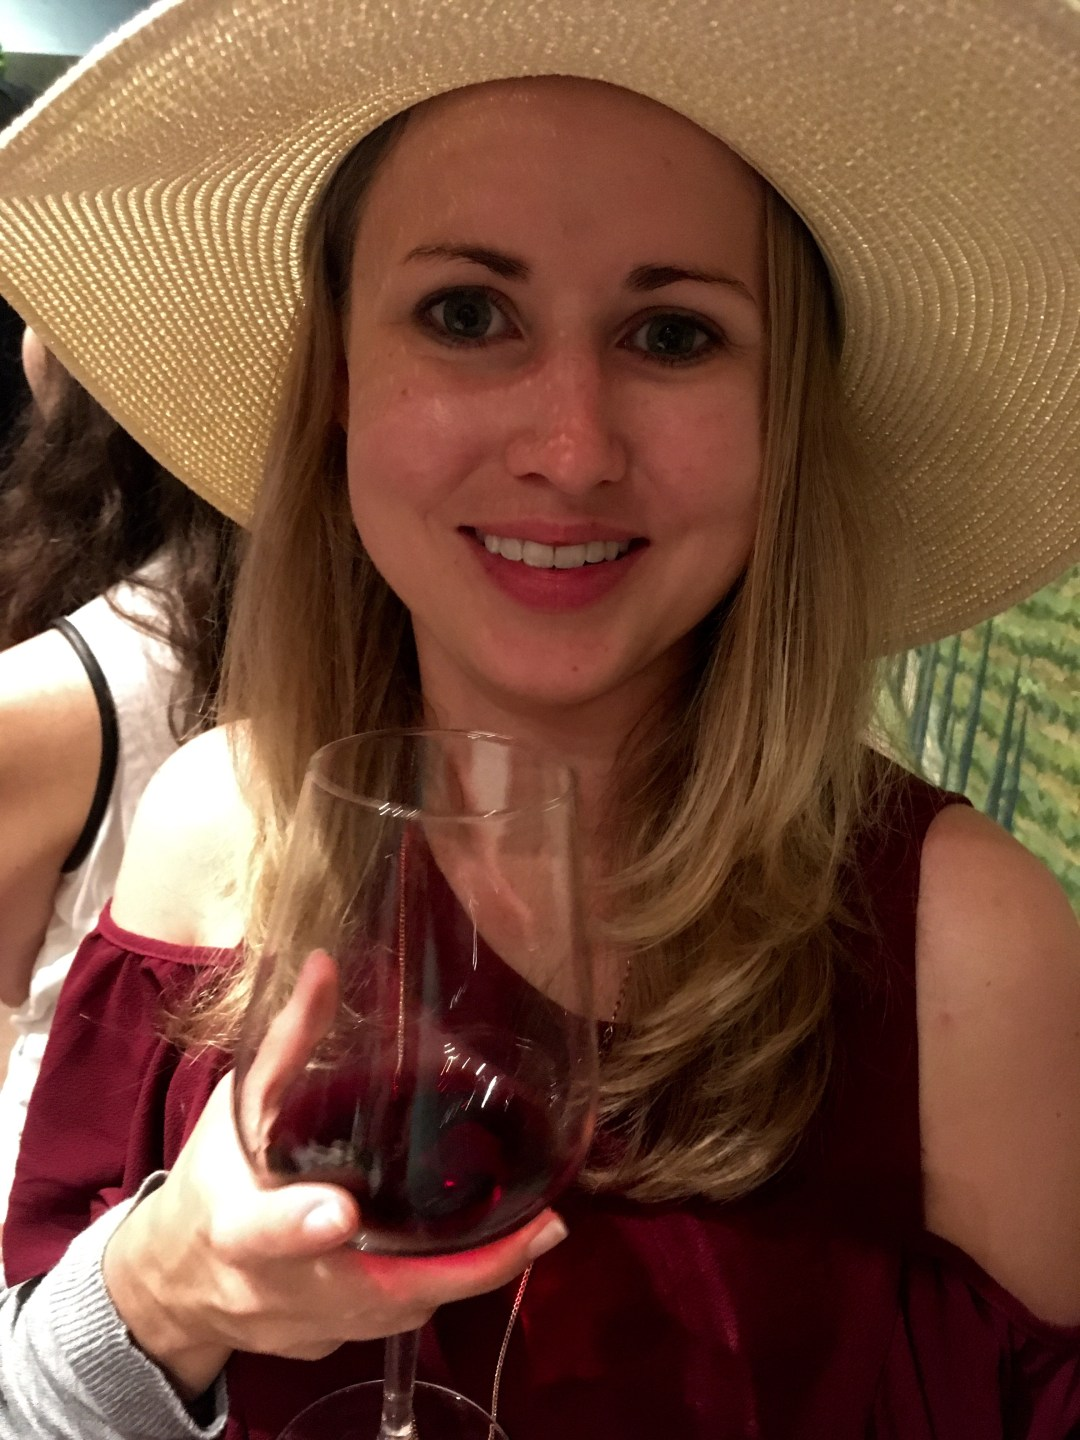 girl holding glass of Chianti red wine during wine tasting tour in Tuscany, Italy